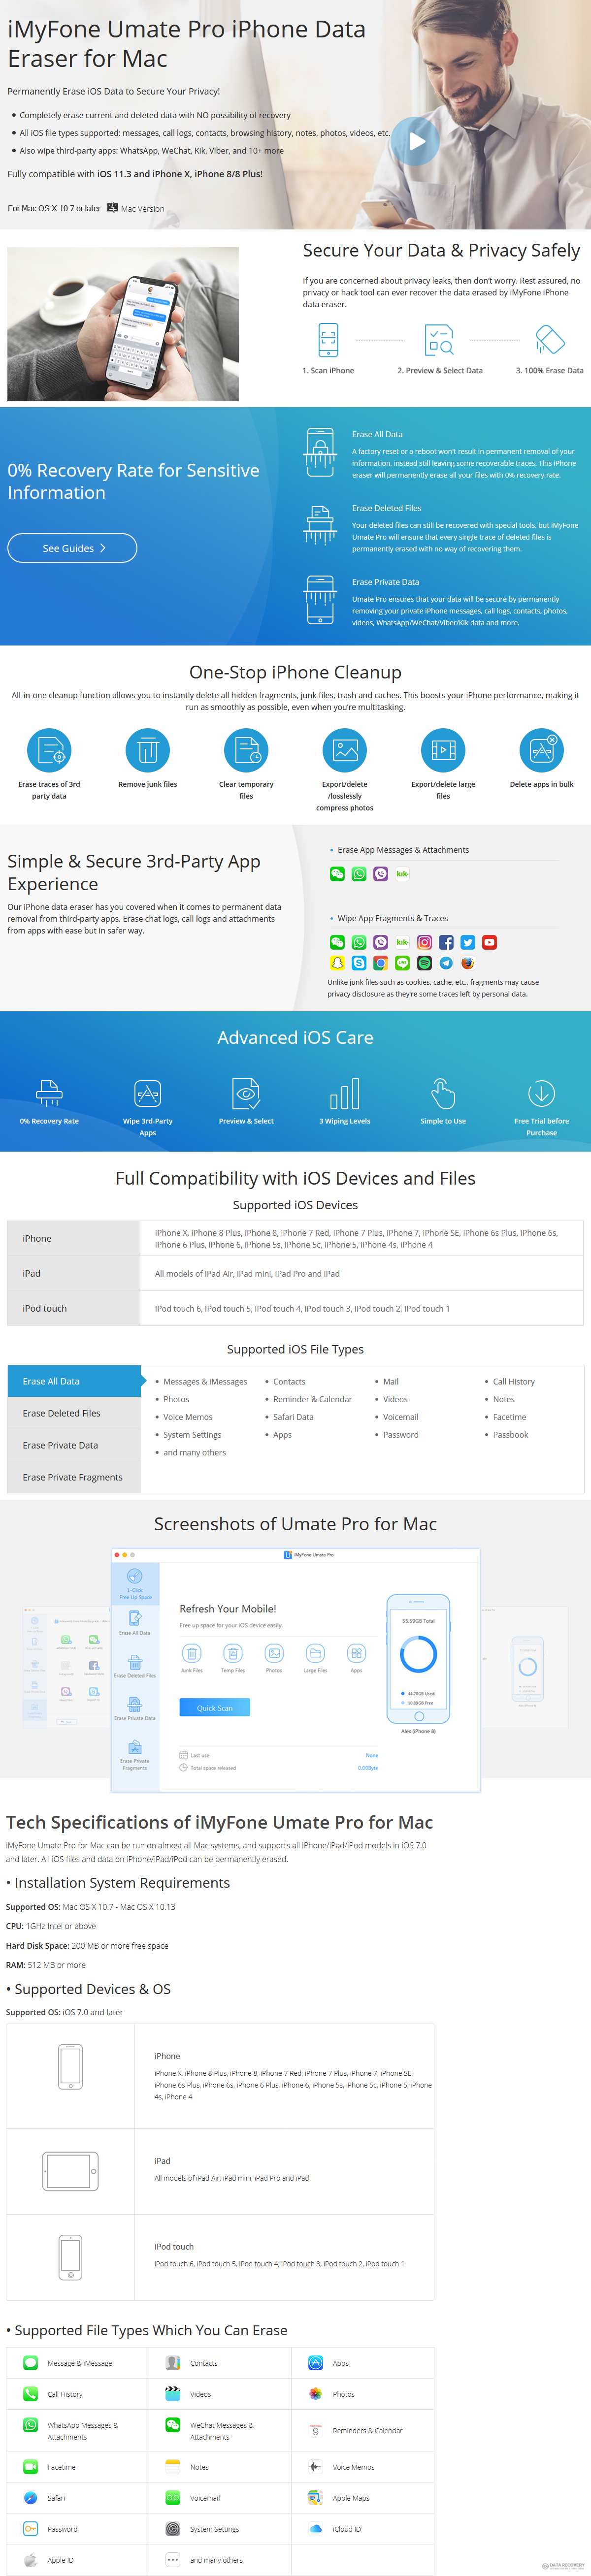 iMyfone Umate Pro for Mac Discount Coupon Code